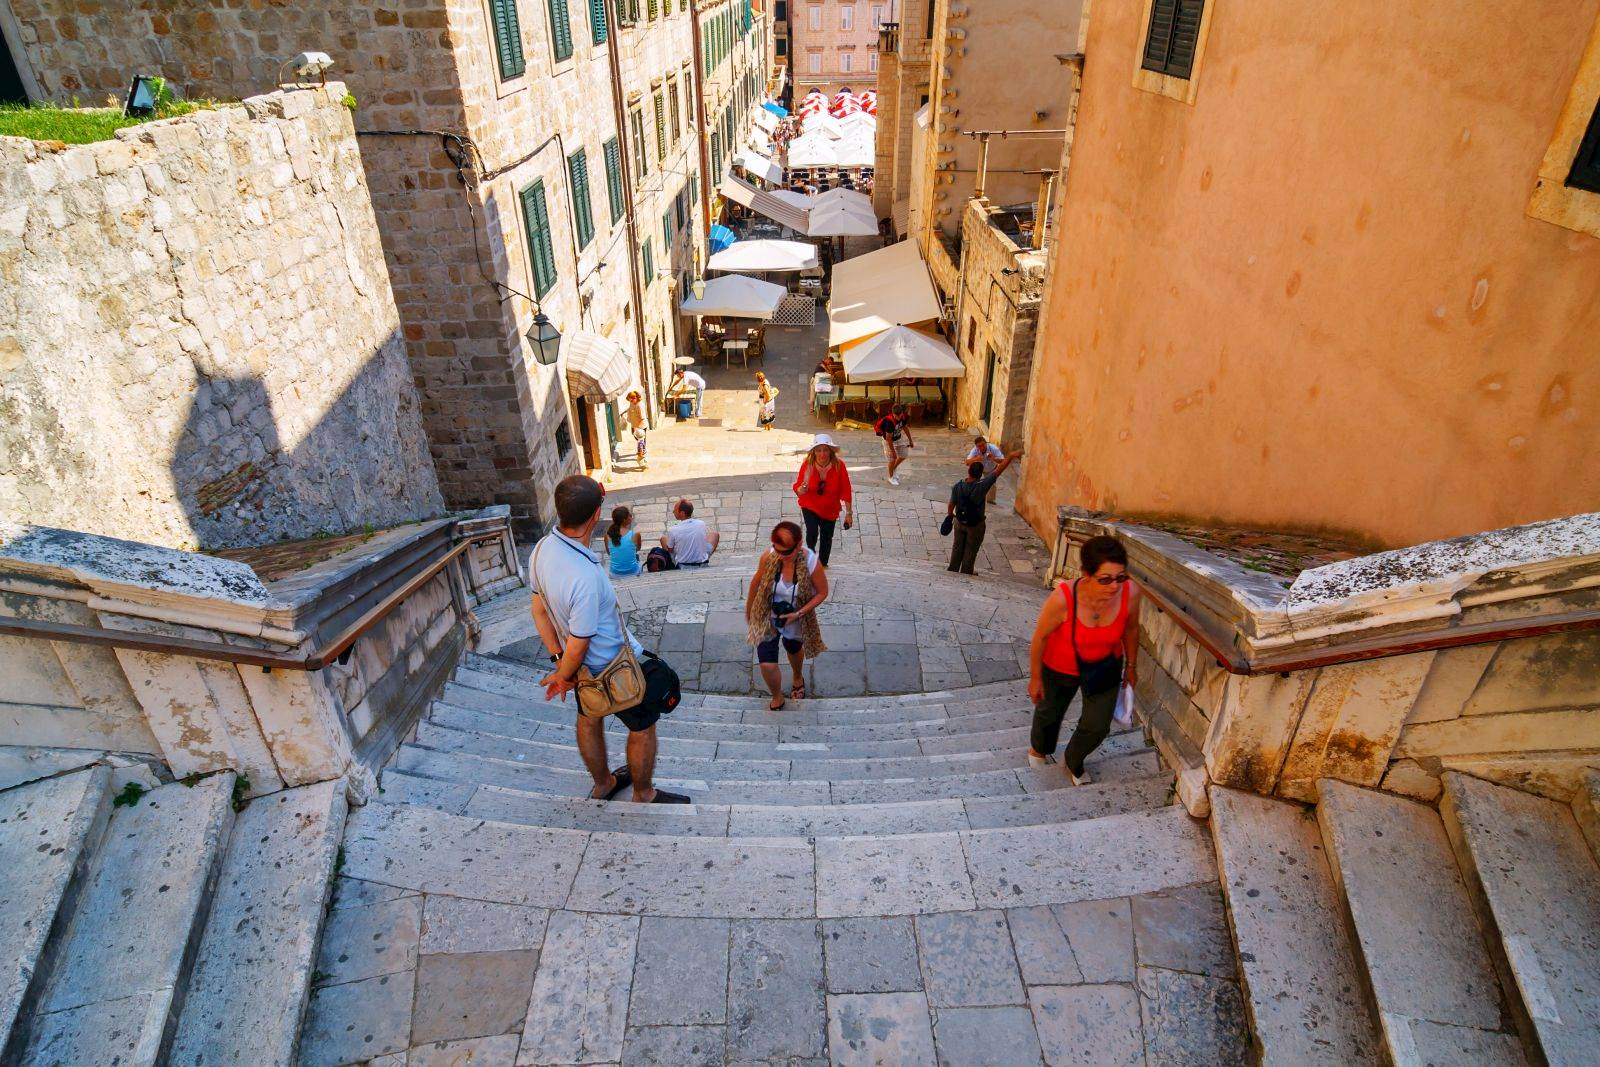 https://www.adriaticglobal.net/images/excursions/game-of-thrones-tour//007-dubrovnik-001-game-of-thrones-private-tour-stairs-walk-of-shame.jpg